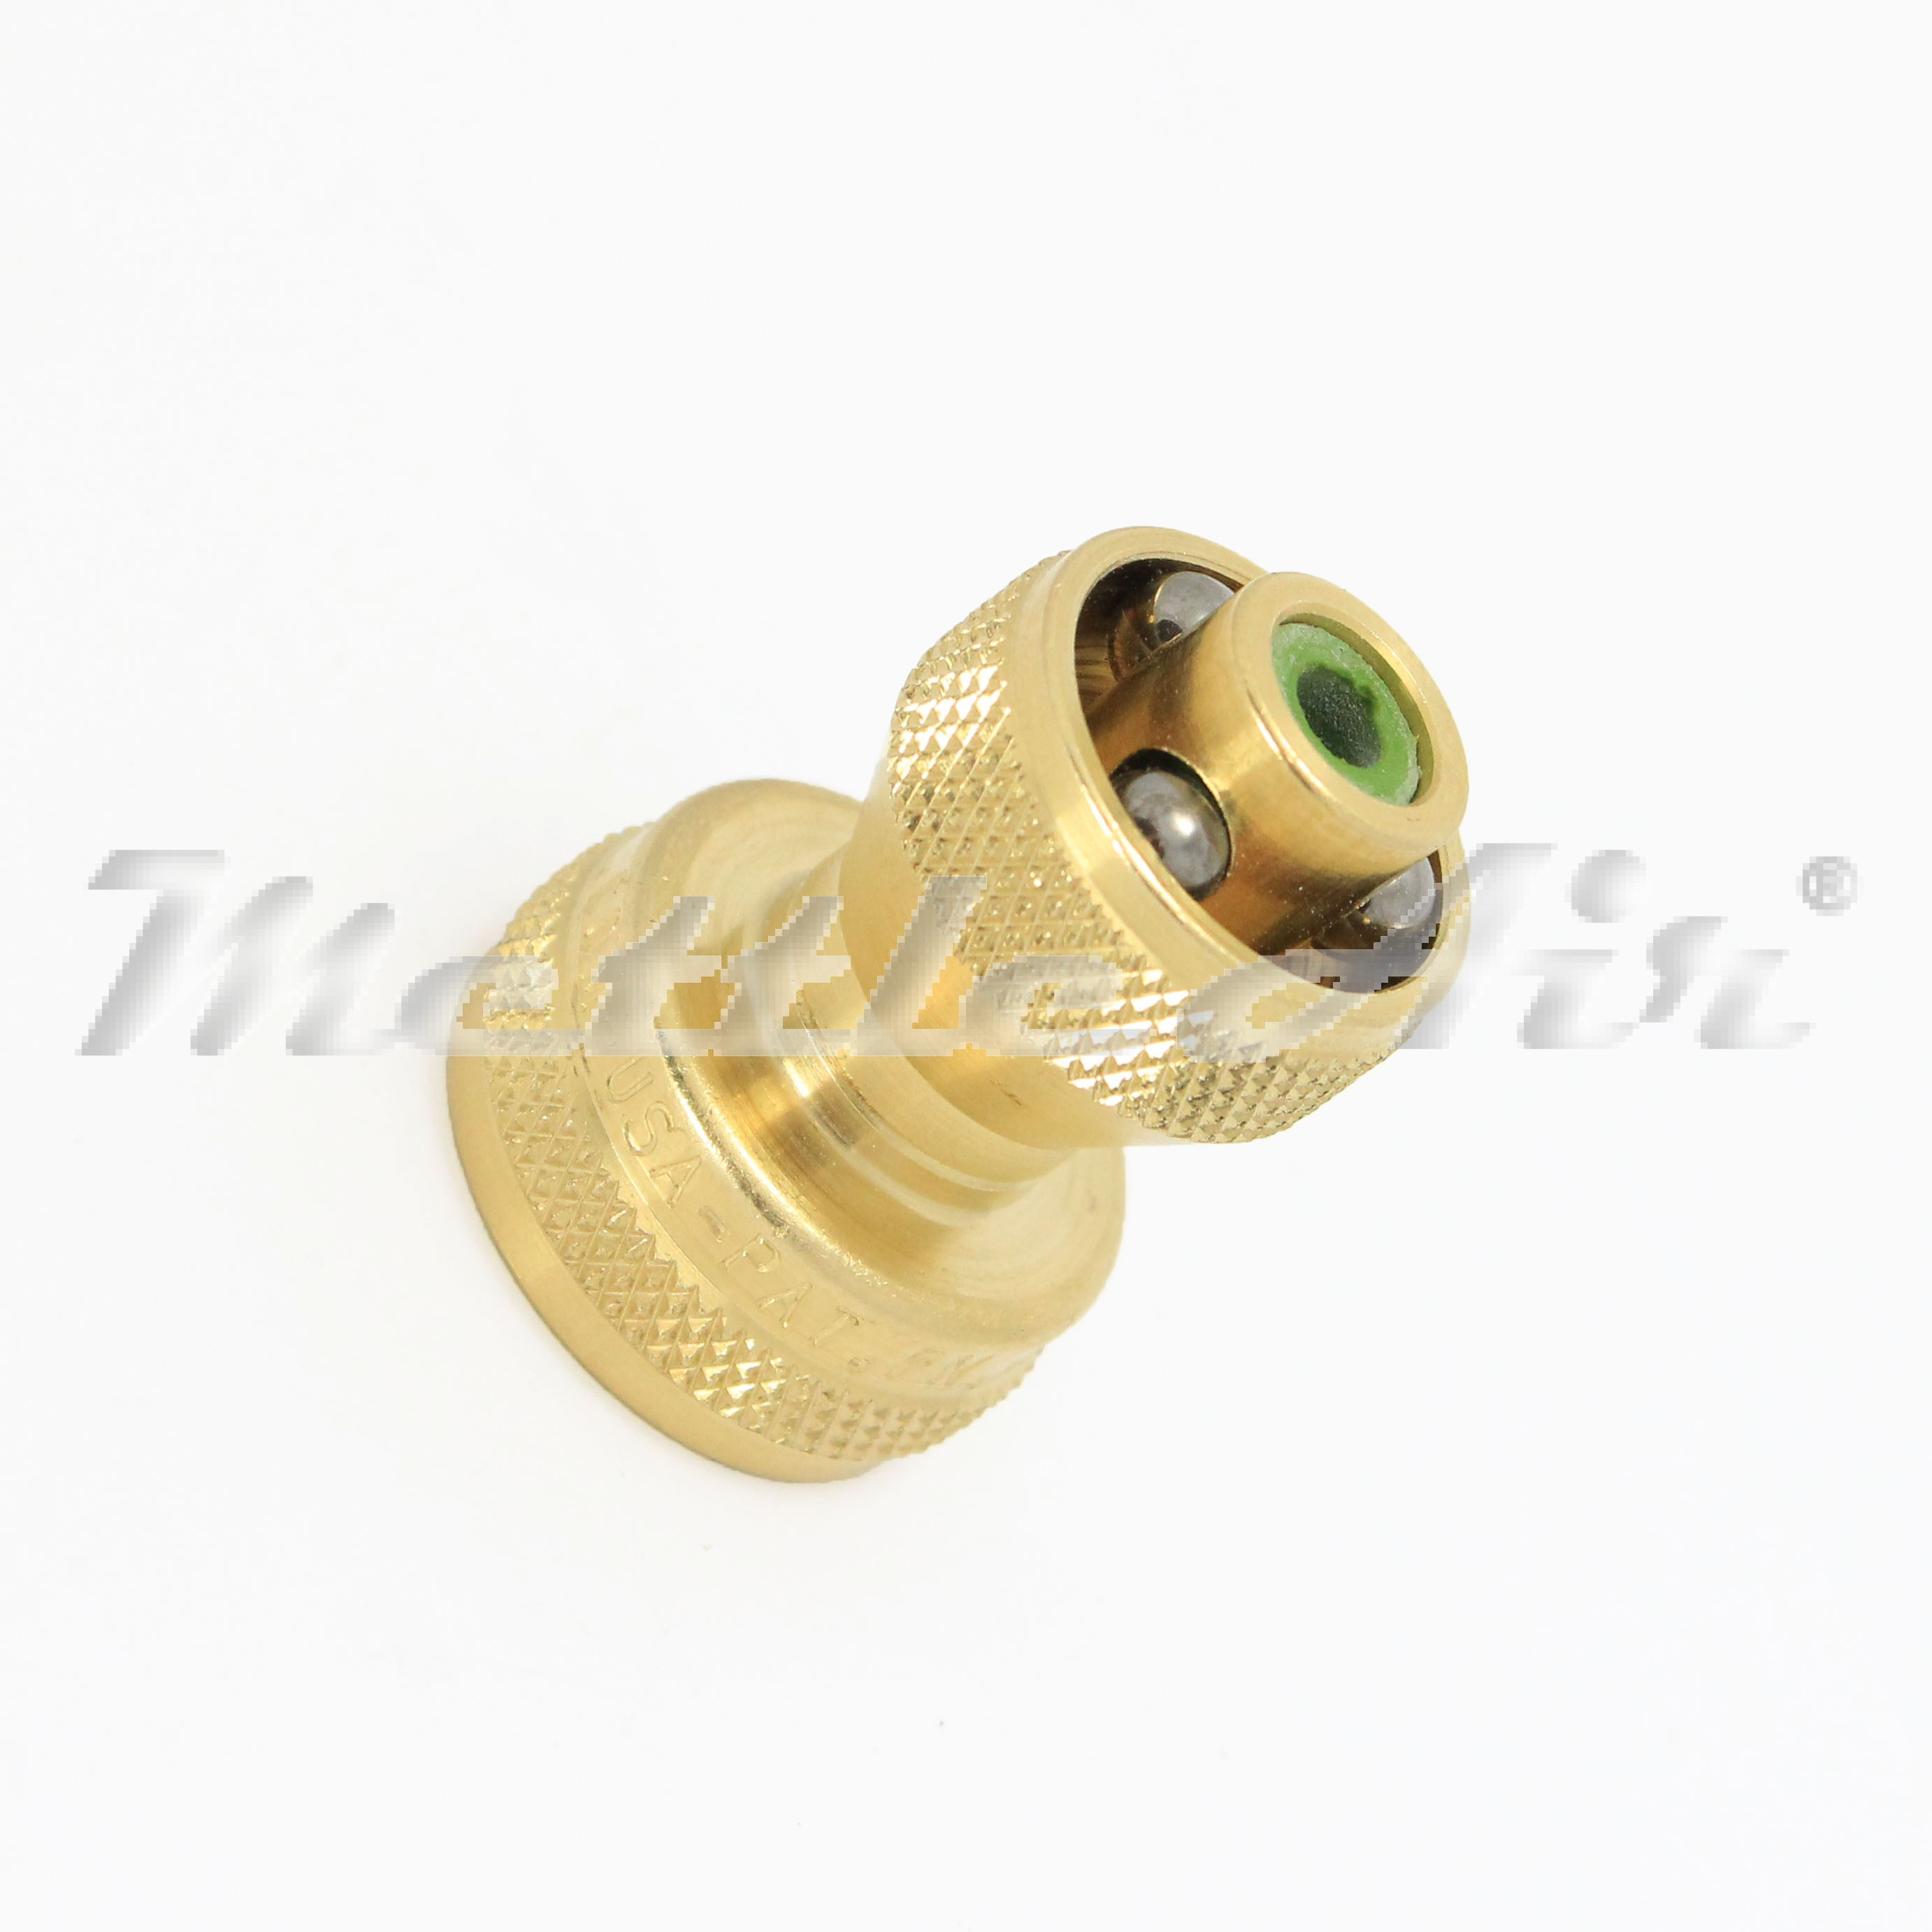 Bullseye Power Brass Twist Hose Nozzle 3 4 Ght Female With Adjustable Stream Shut Off Made In Usa Home Garden Marine Other